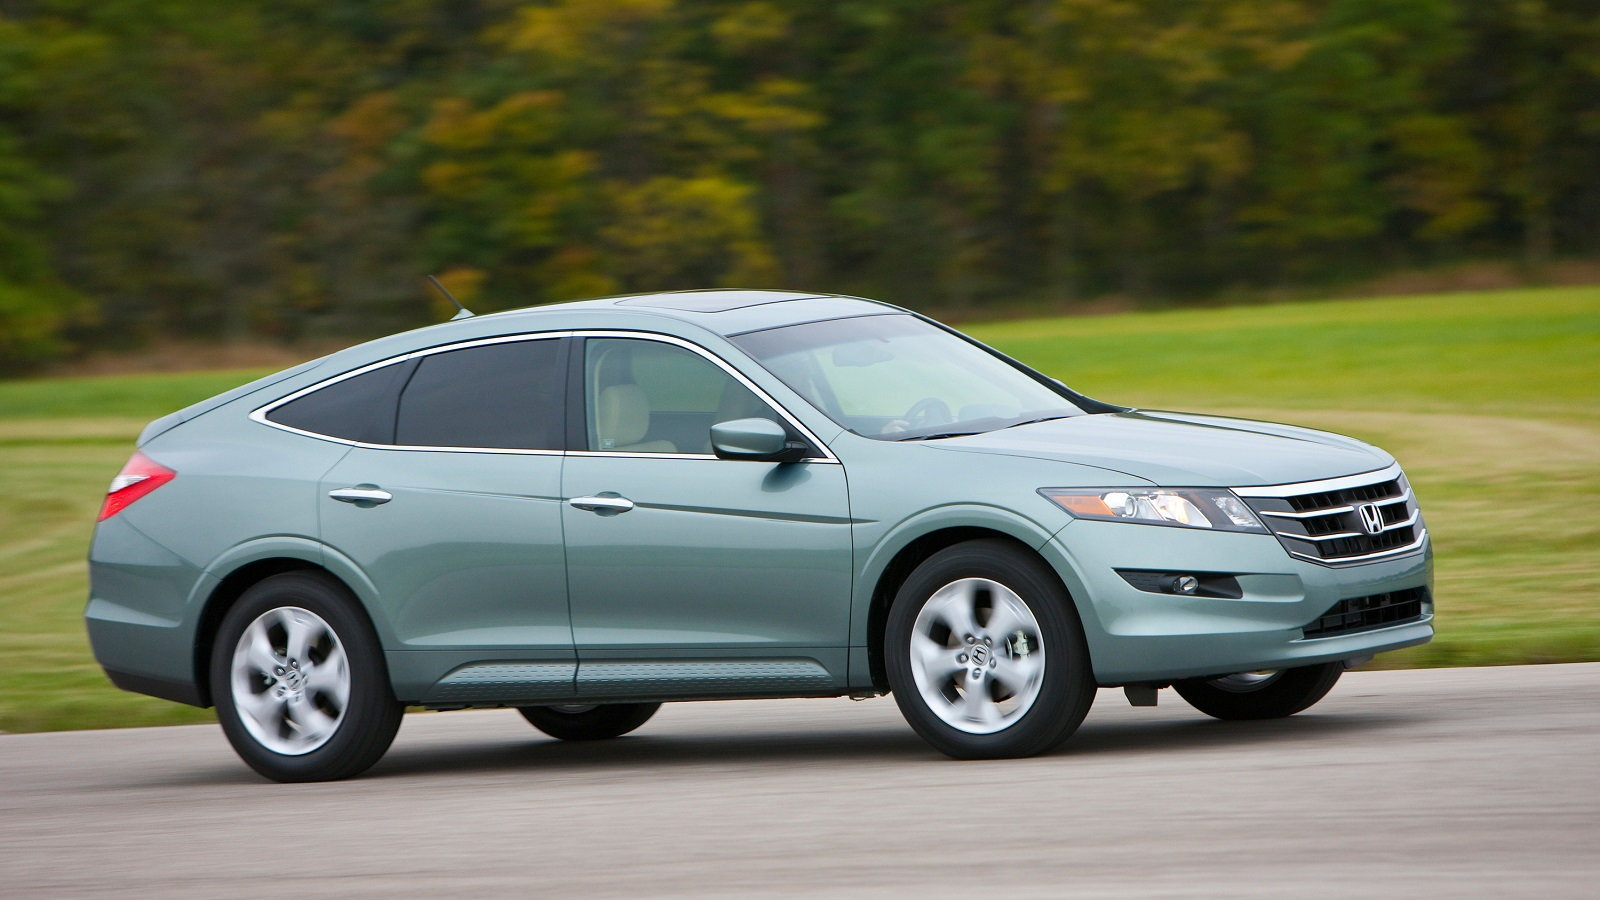 5. This is the stretch, but do you like the Accord Crosstour?